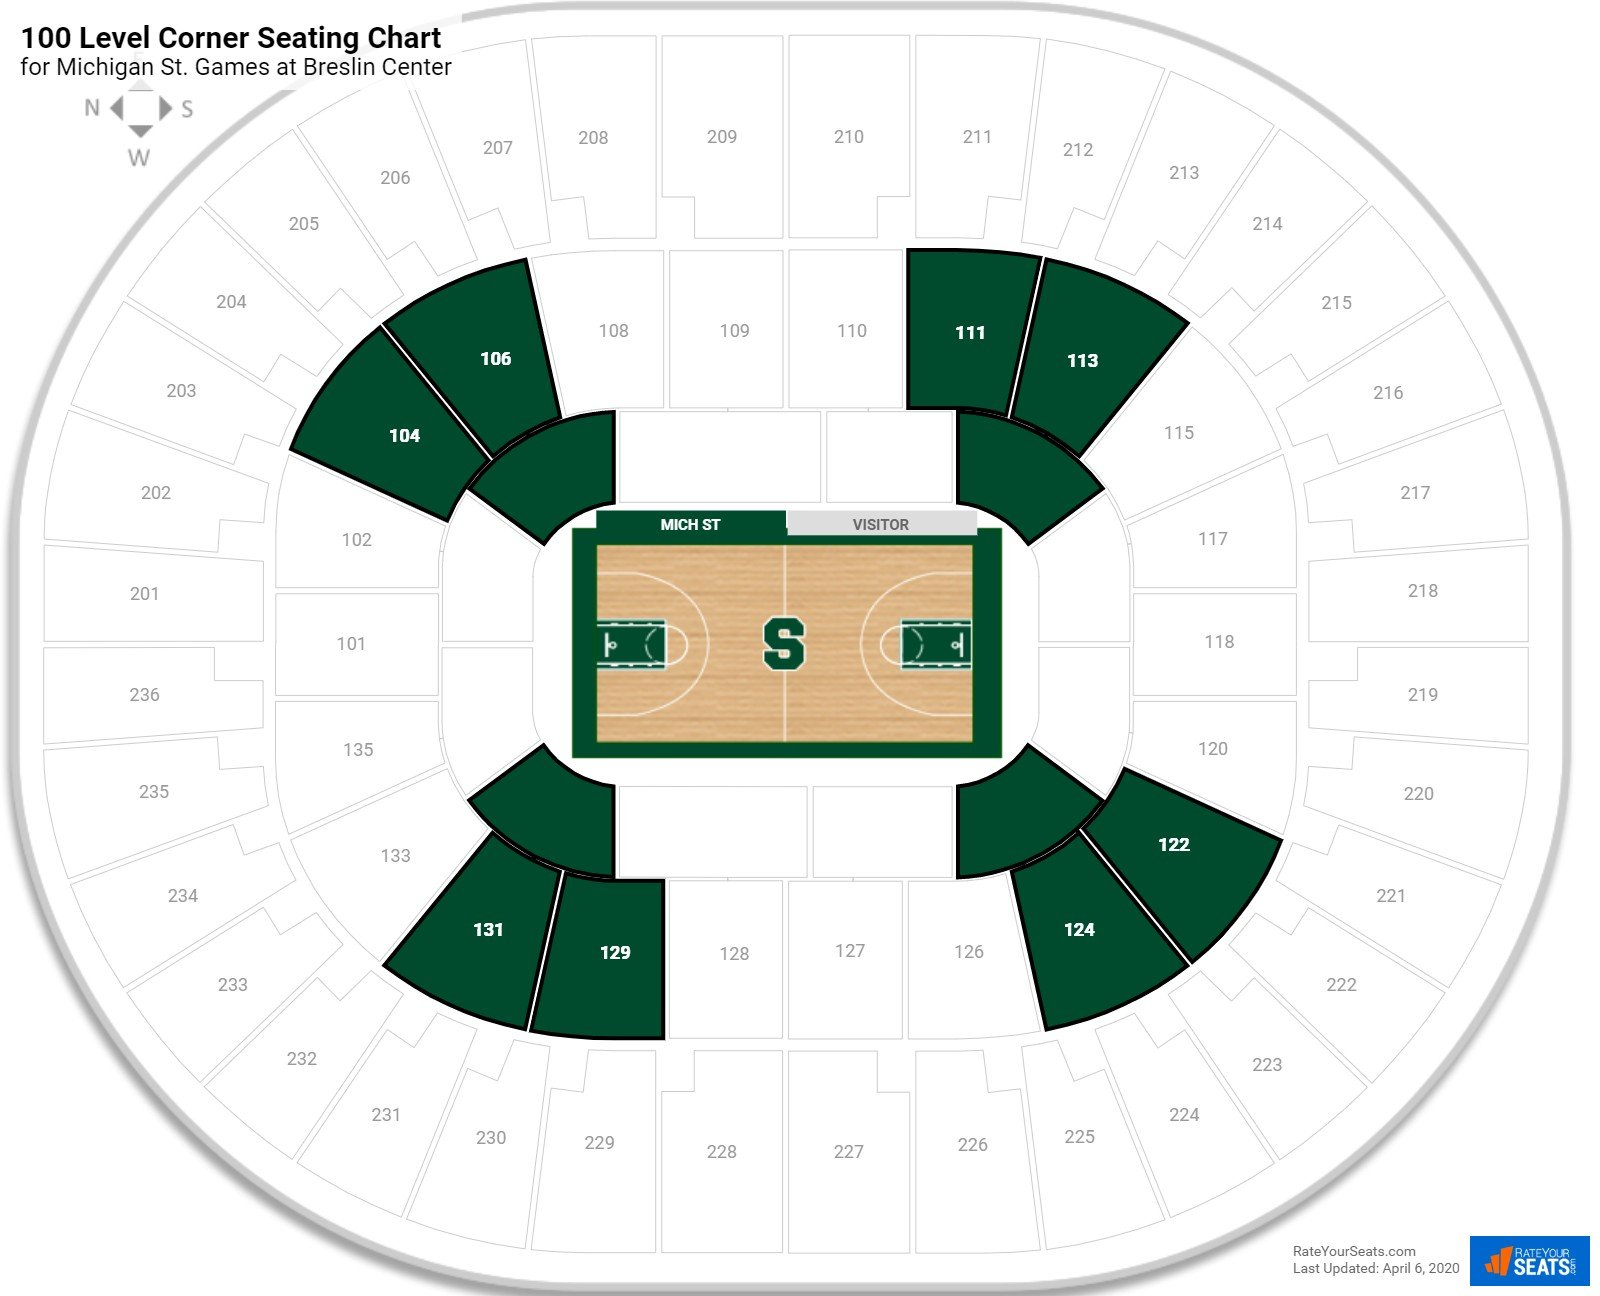 Breslin Center 100 Level Corner Seating Chart